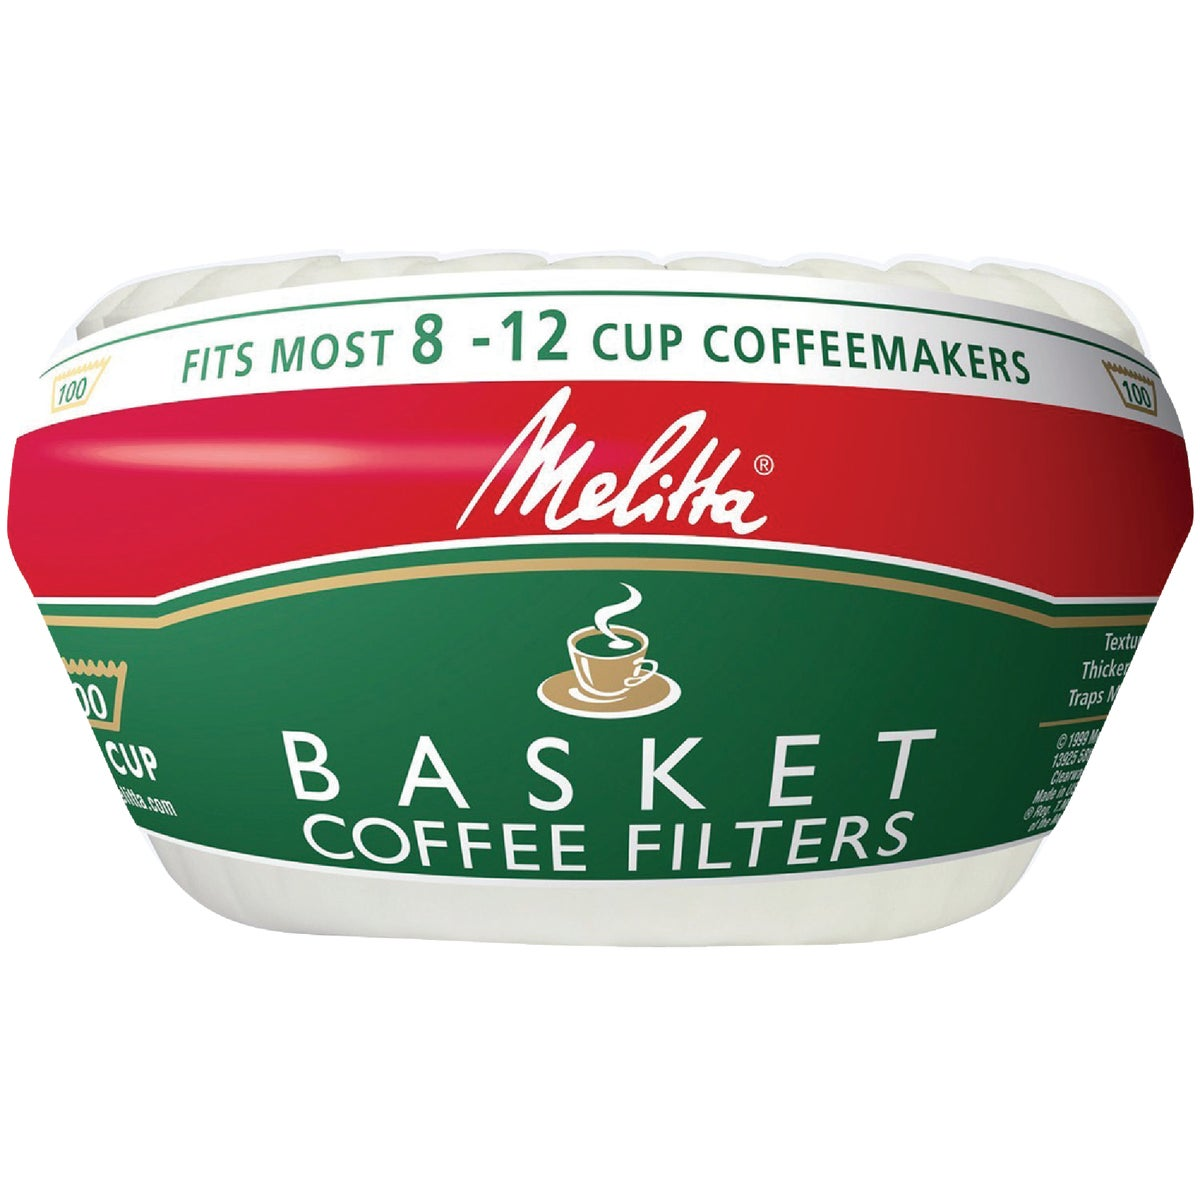 100CT COFFEE FILTER - 629552 by Melitta U S A Inc